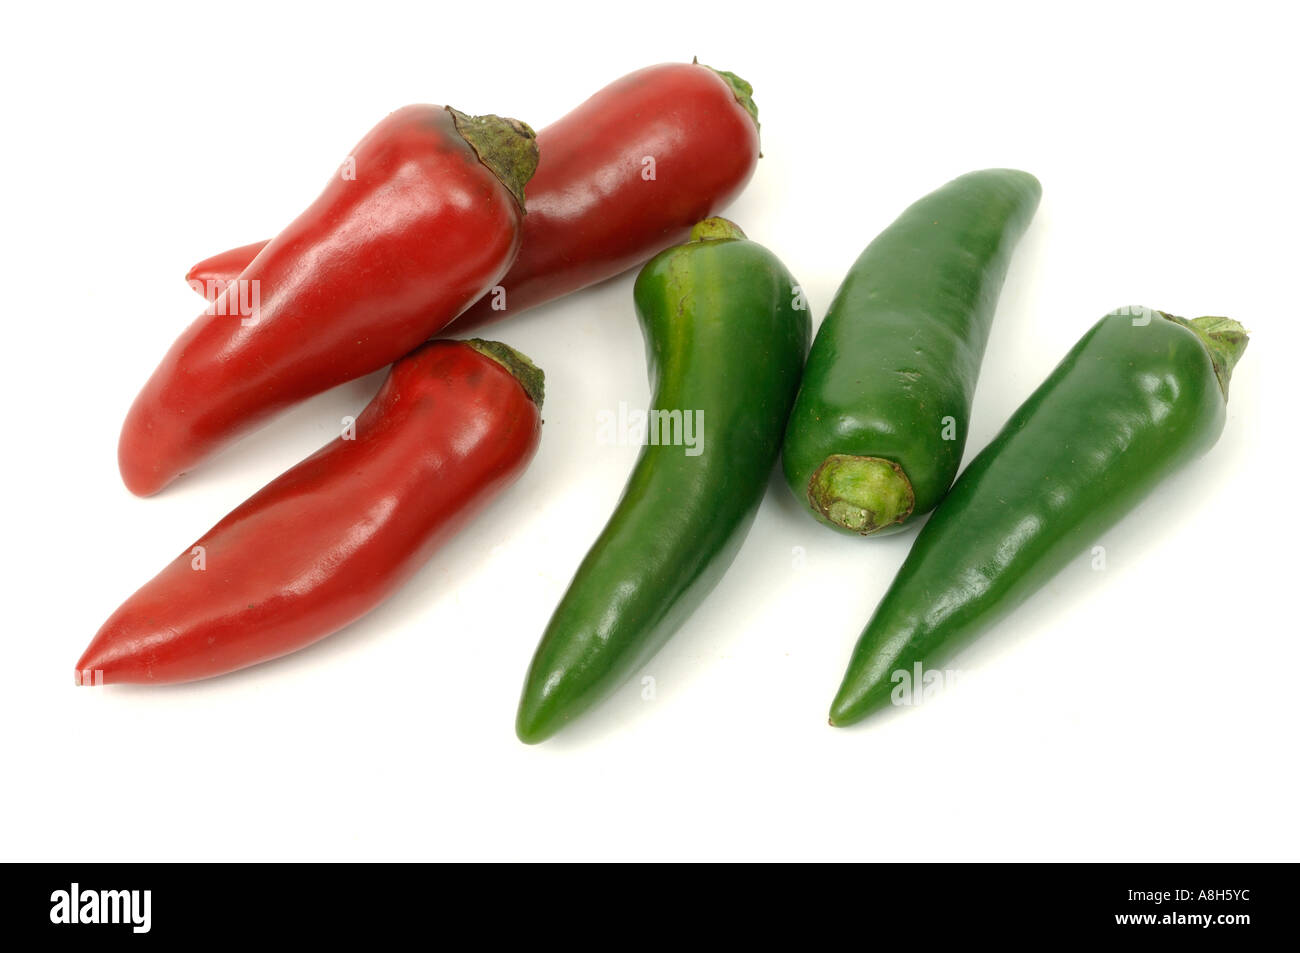 Vegetable produce typical supermarket bought red green chili peppers Stock Photo